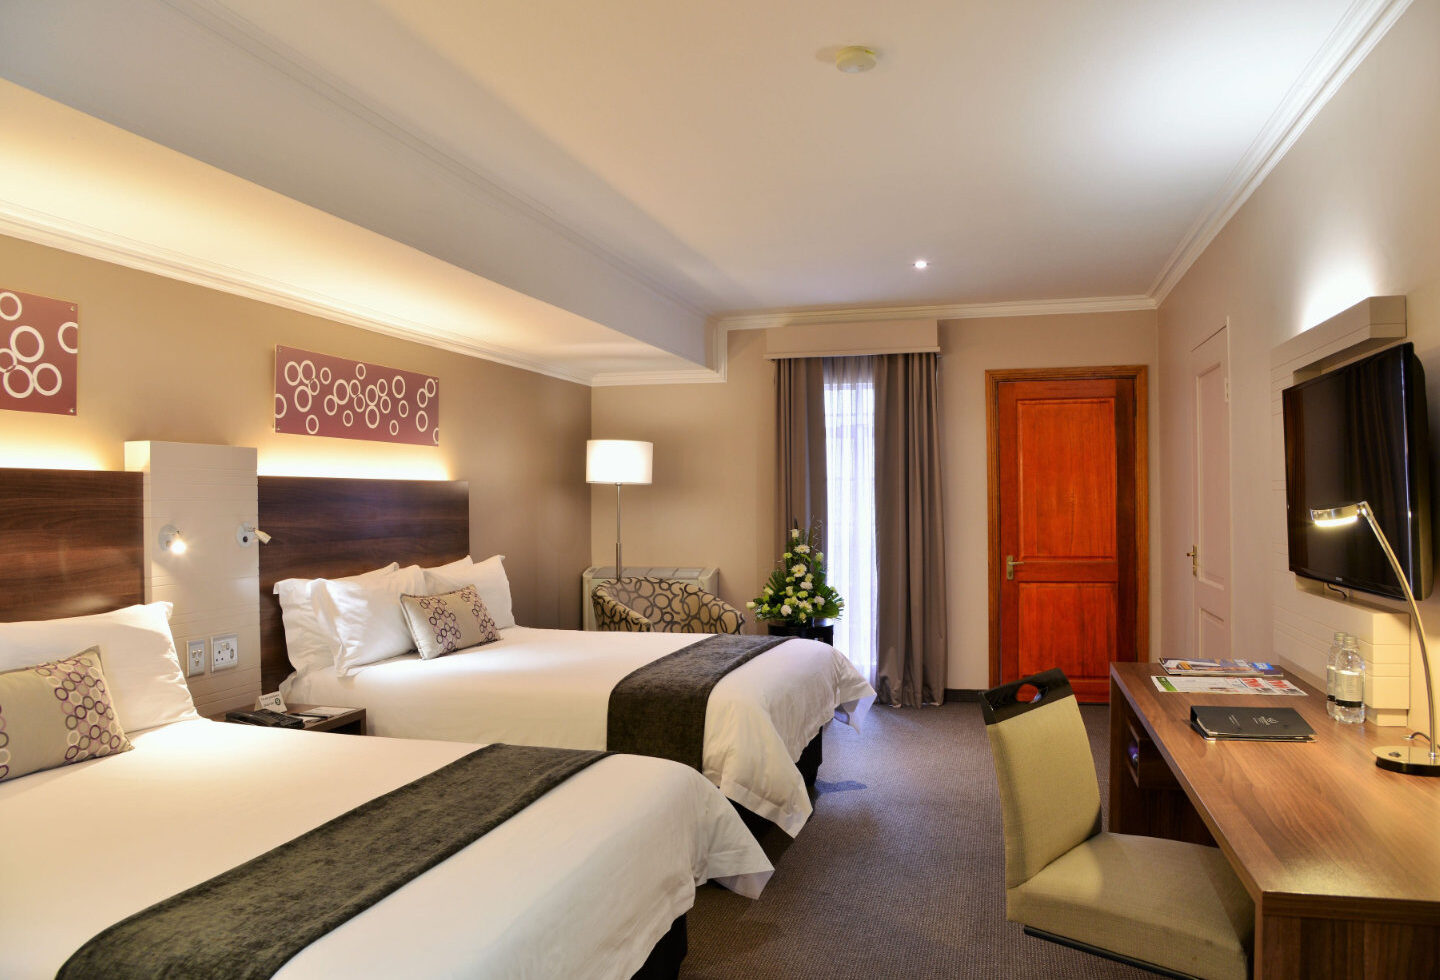 Silverbirch Hotel Room with Two Beds and LCD Screen